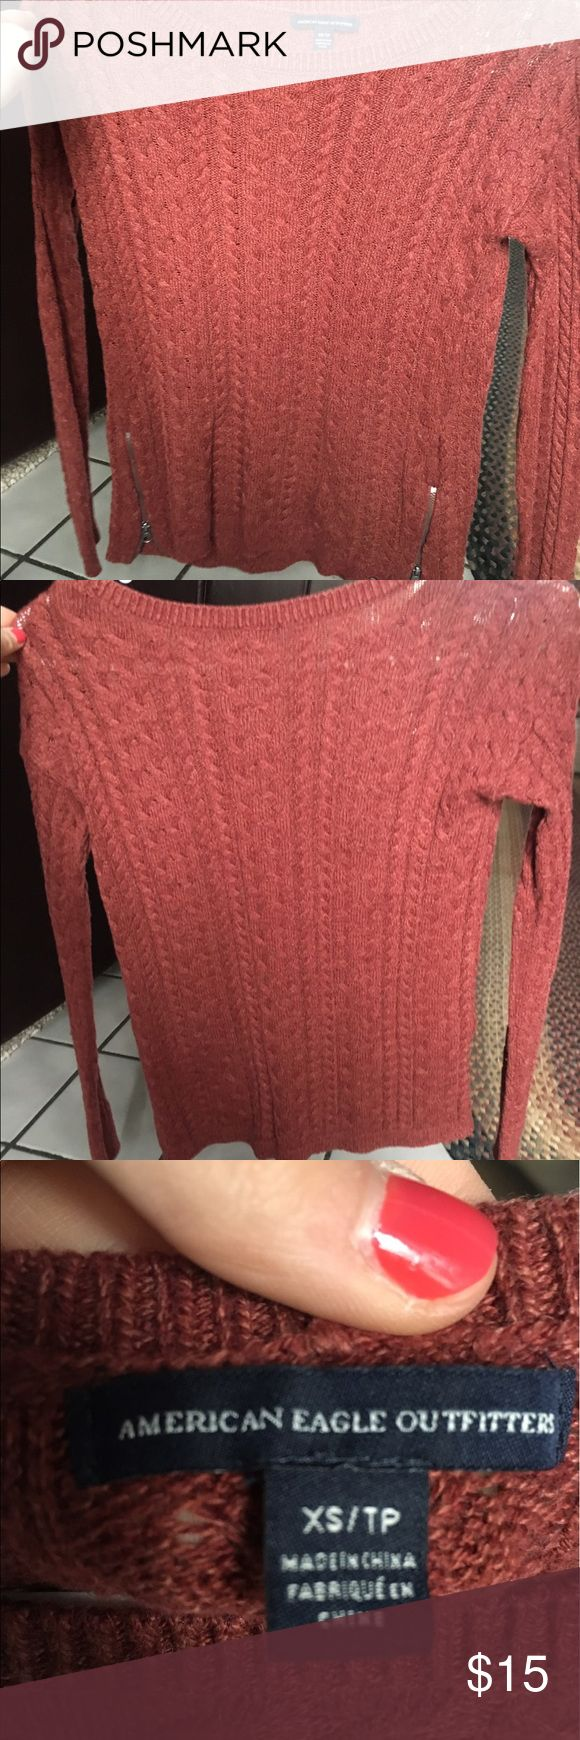 American Eagle sweater Brownish red colored American Eagle sweater. Zippers on both sides. Worn a couple times, but in great condition! Prices are negotiable! American Eagle Outfitters Tops